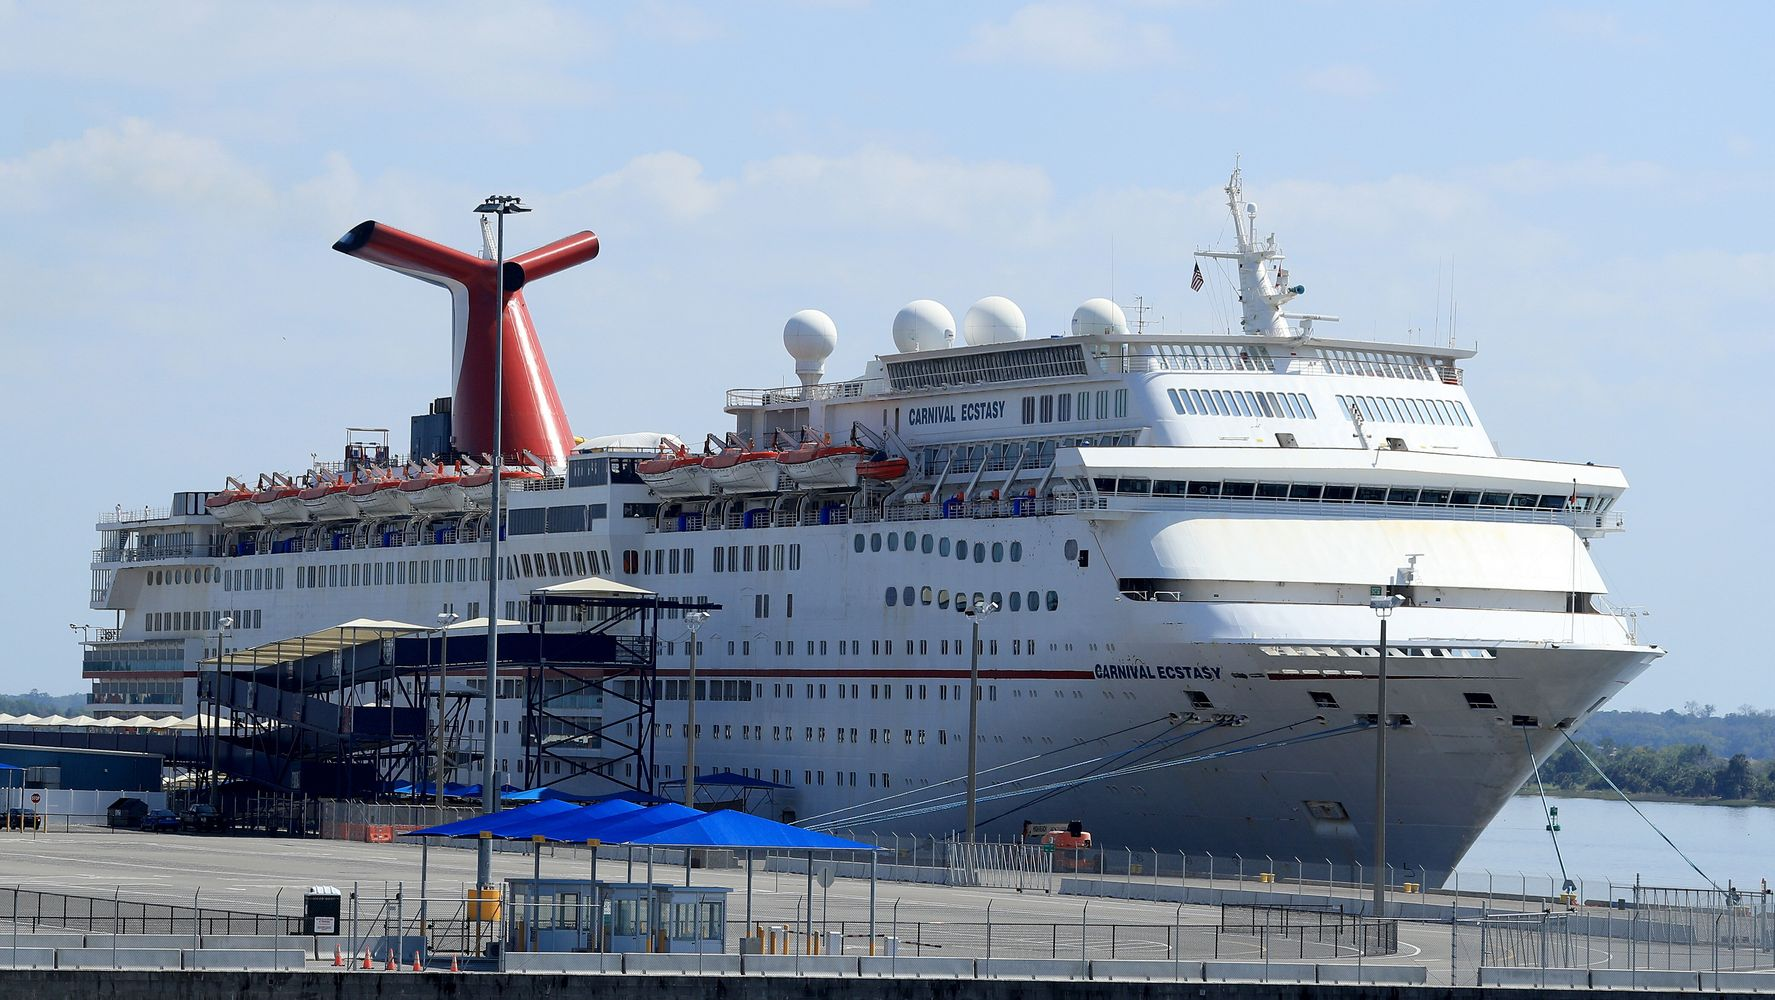 Carnival Says It Plans To Resume U.S. Cruises By Midsummer